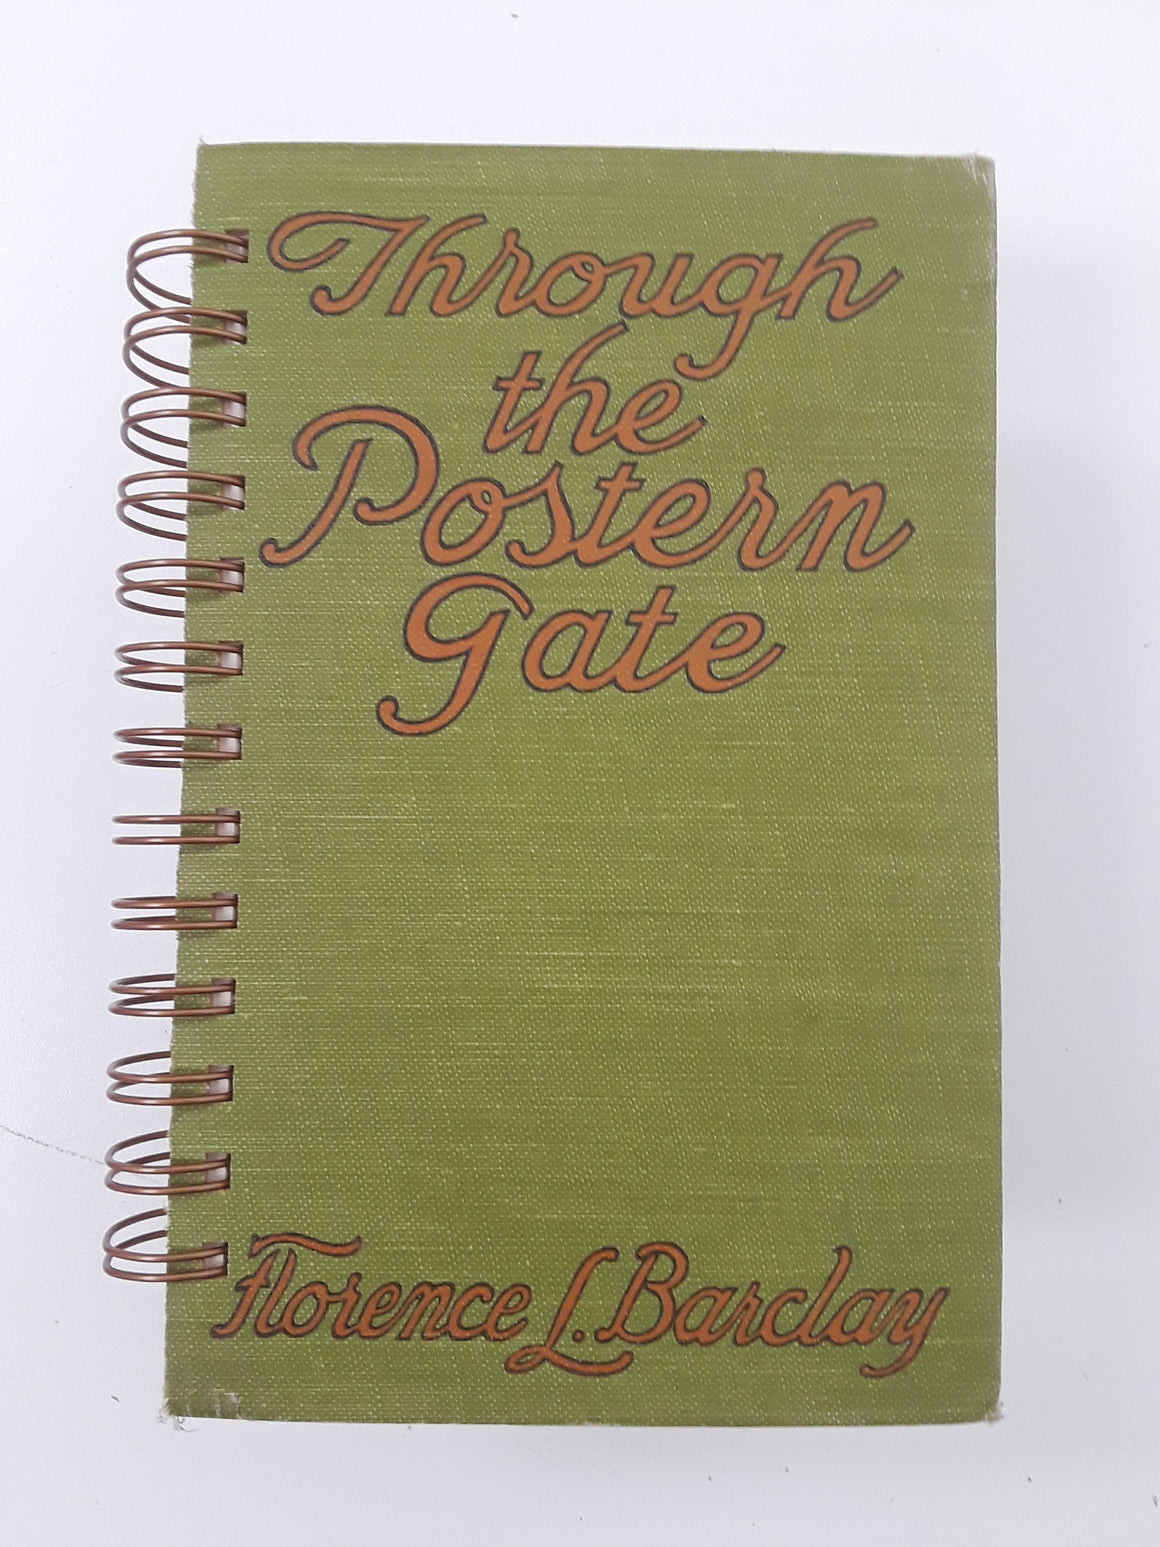 Through the Postern Gate-Red Barn Collections